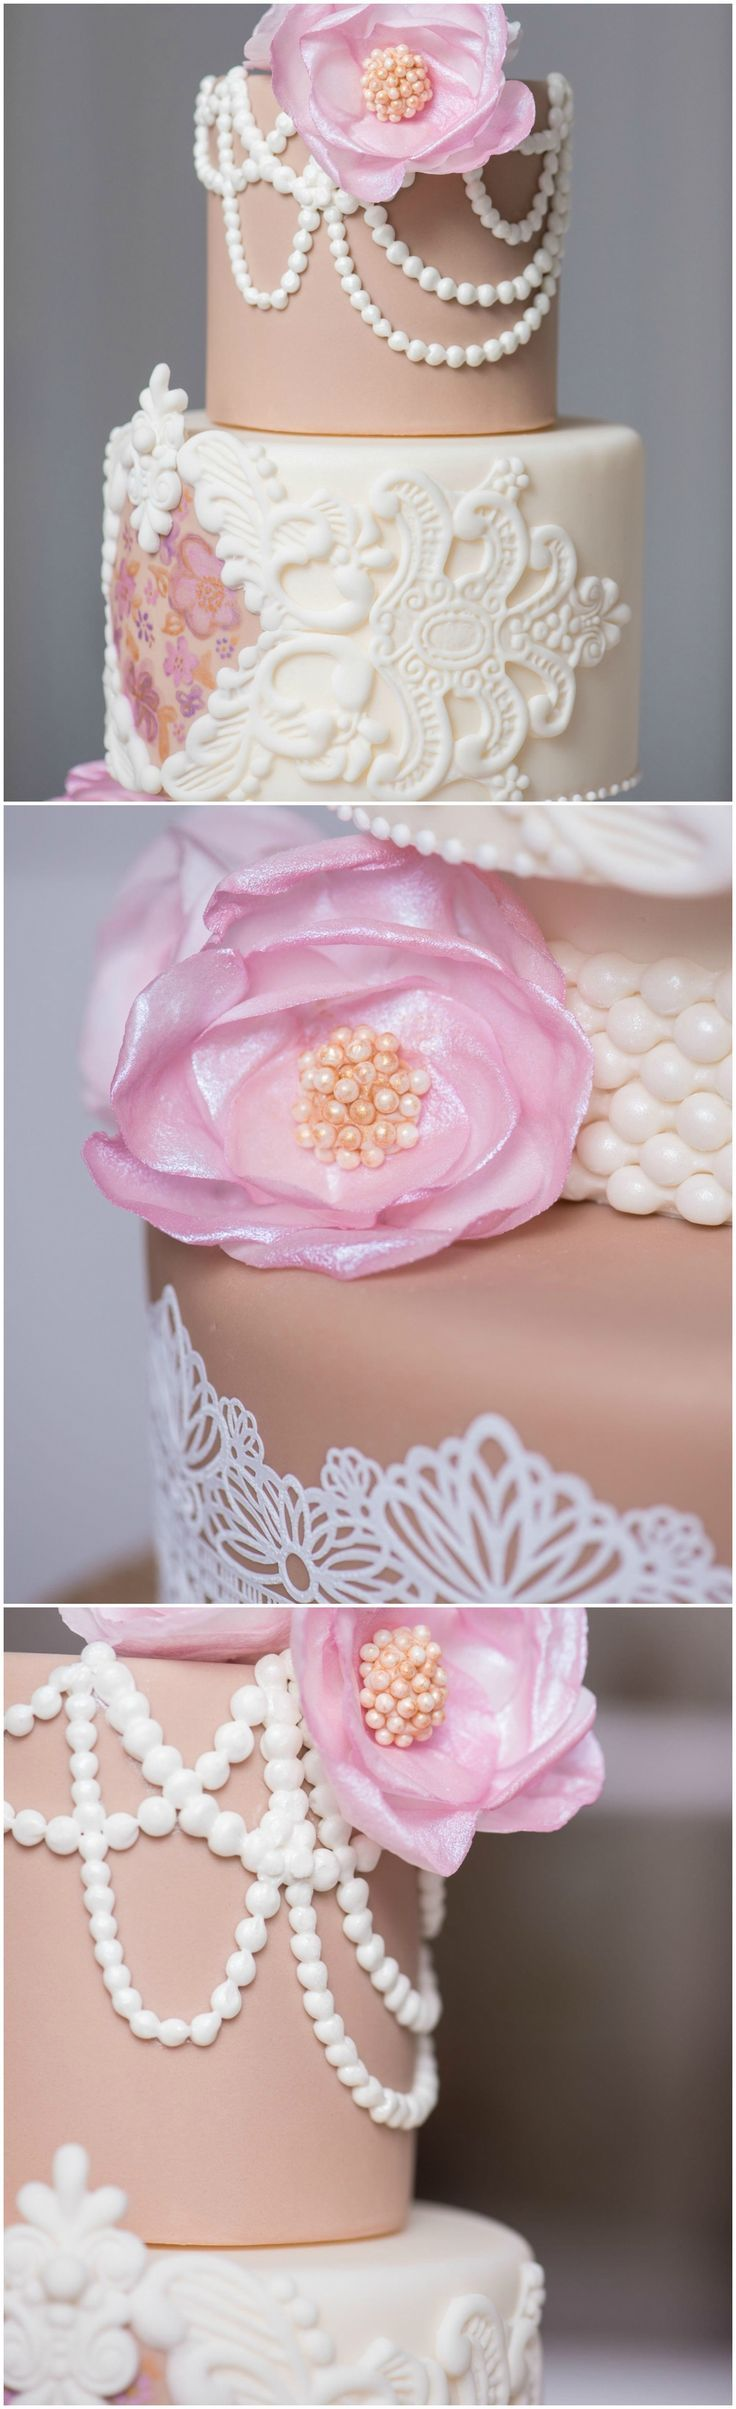 Peony And Pearls Southern Wedding Cake